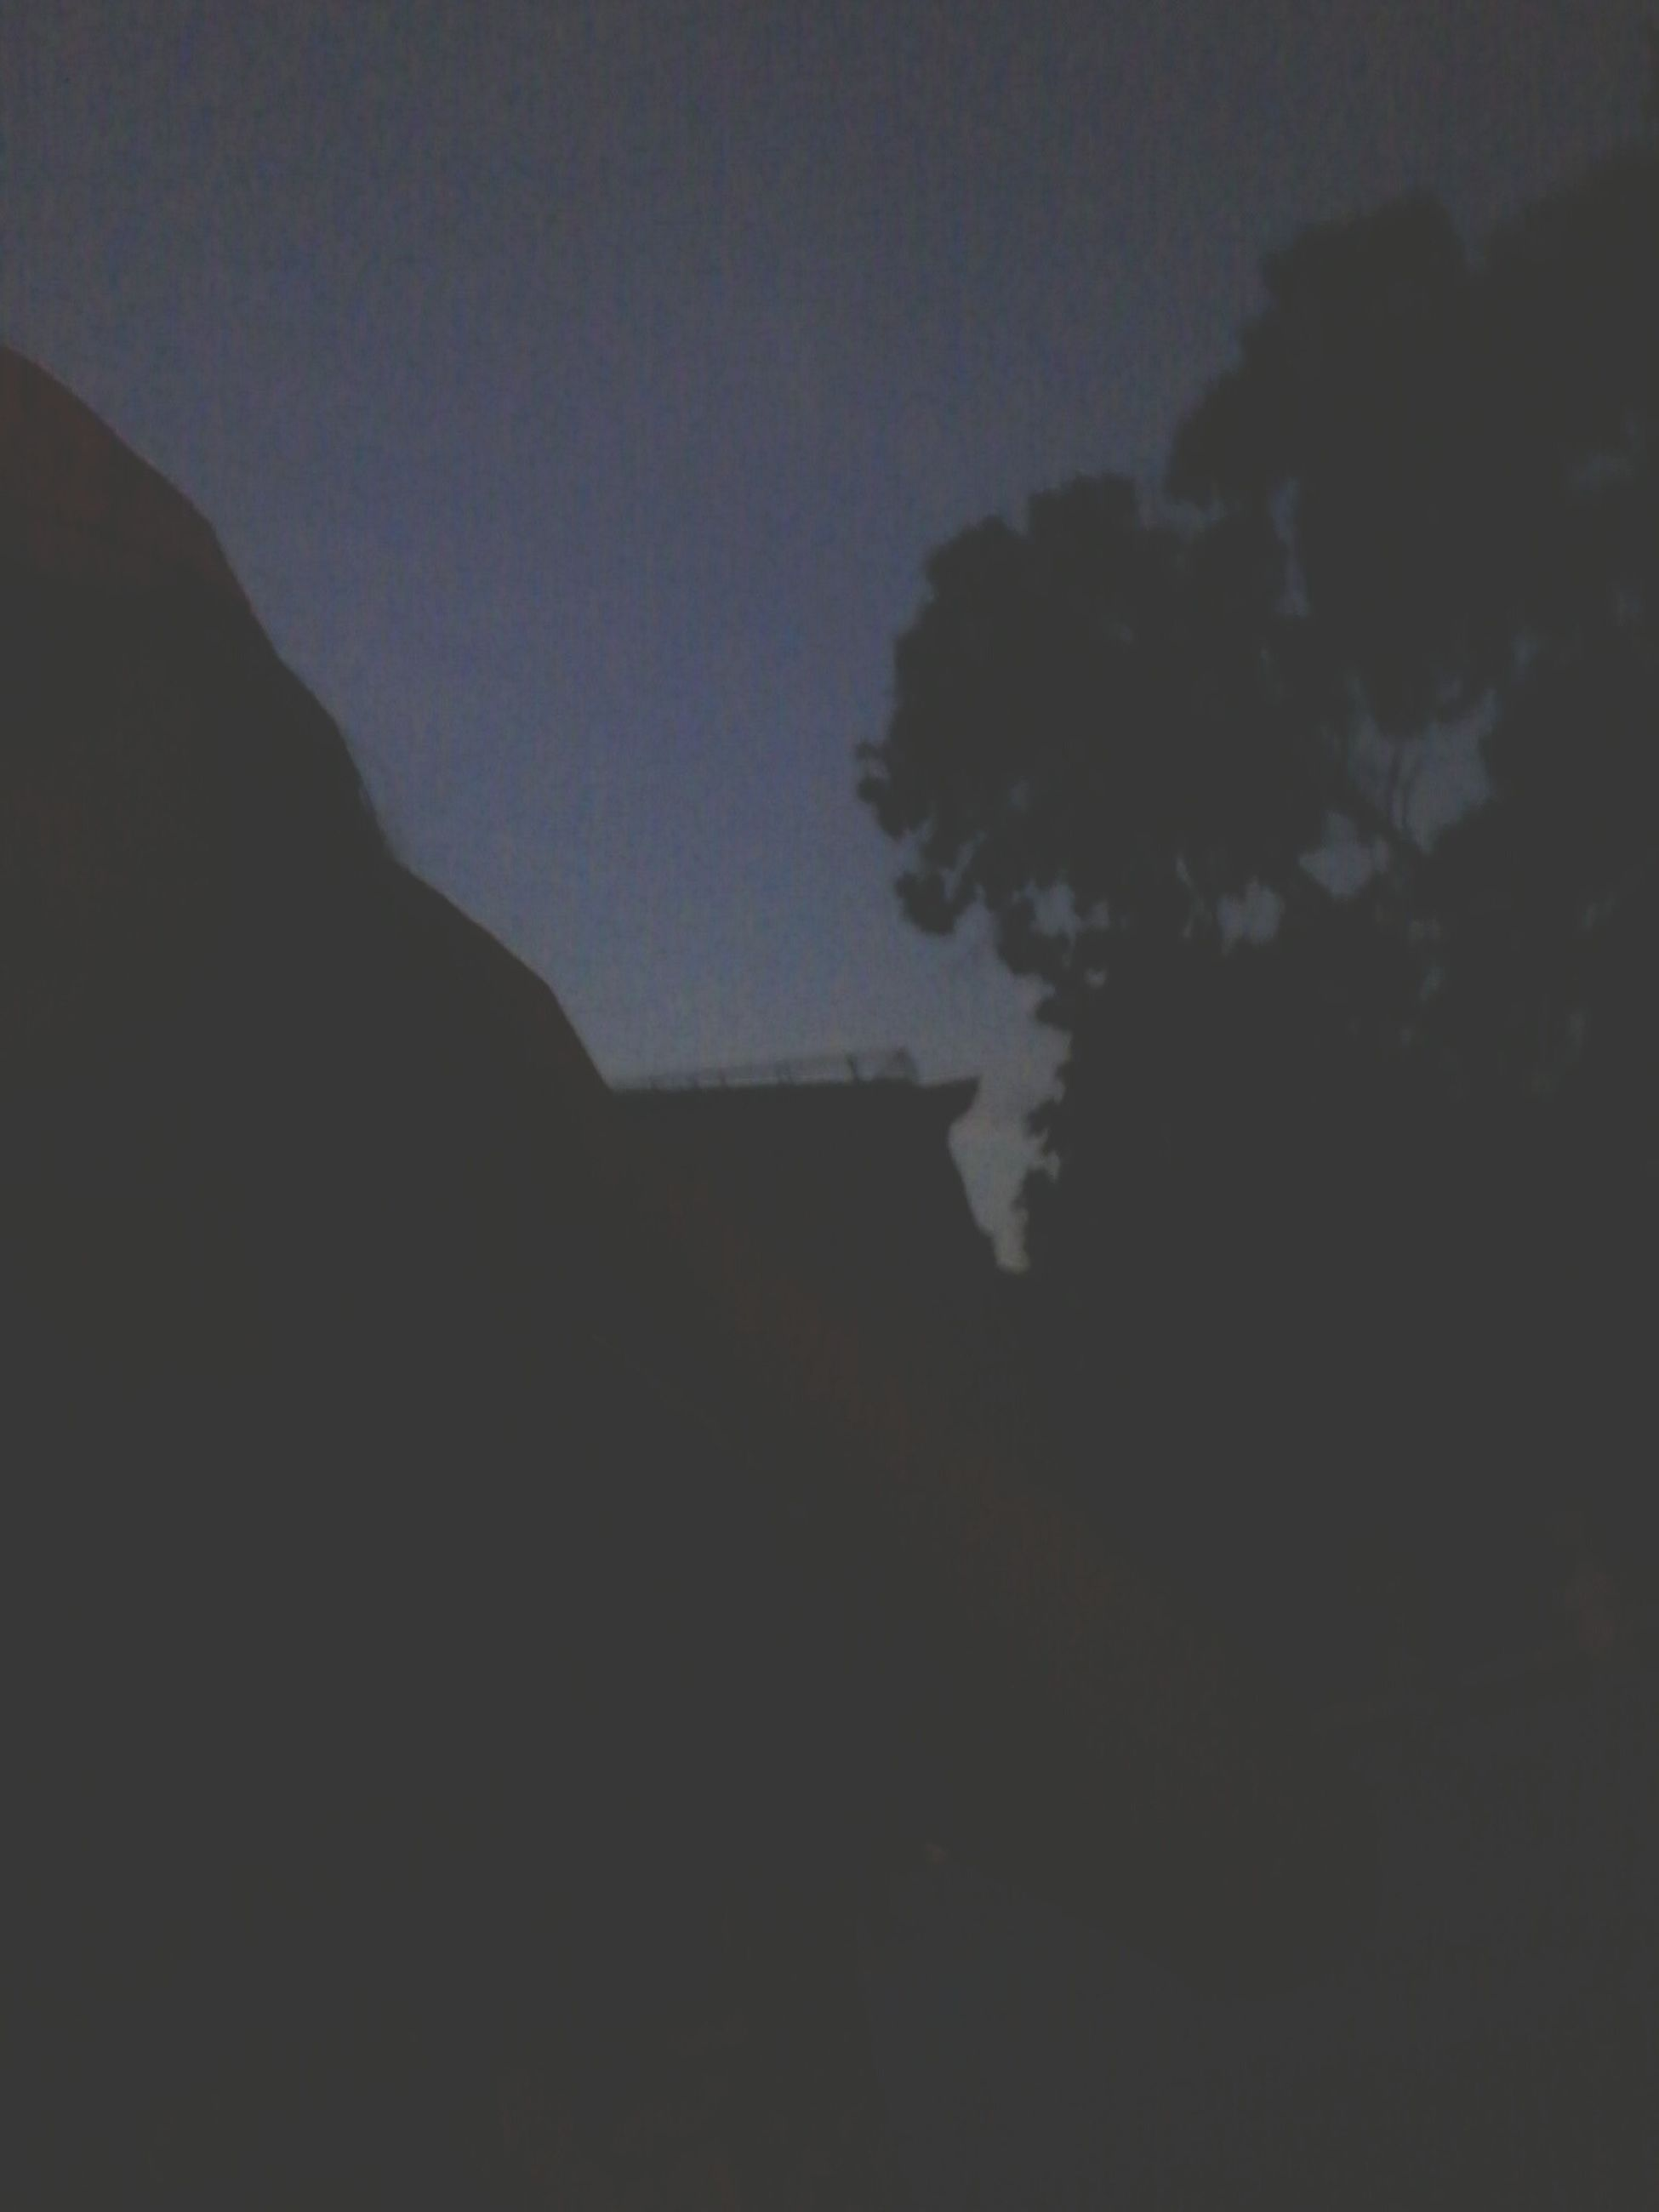 silhouette, nature, sky, low angle view, beauty in nature, scenics, no people, outdoors, tree, clear sky, night